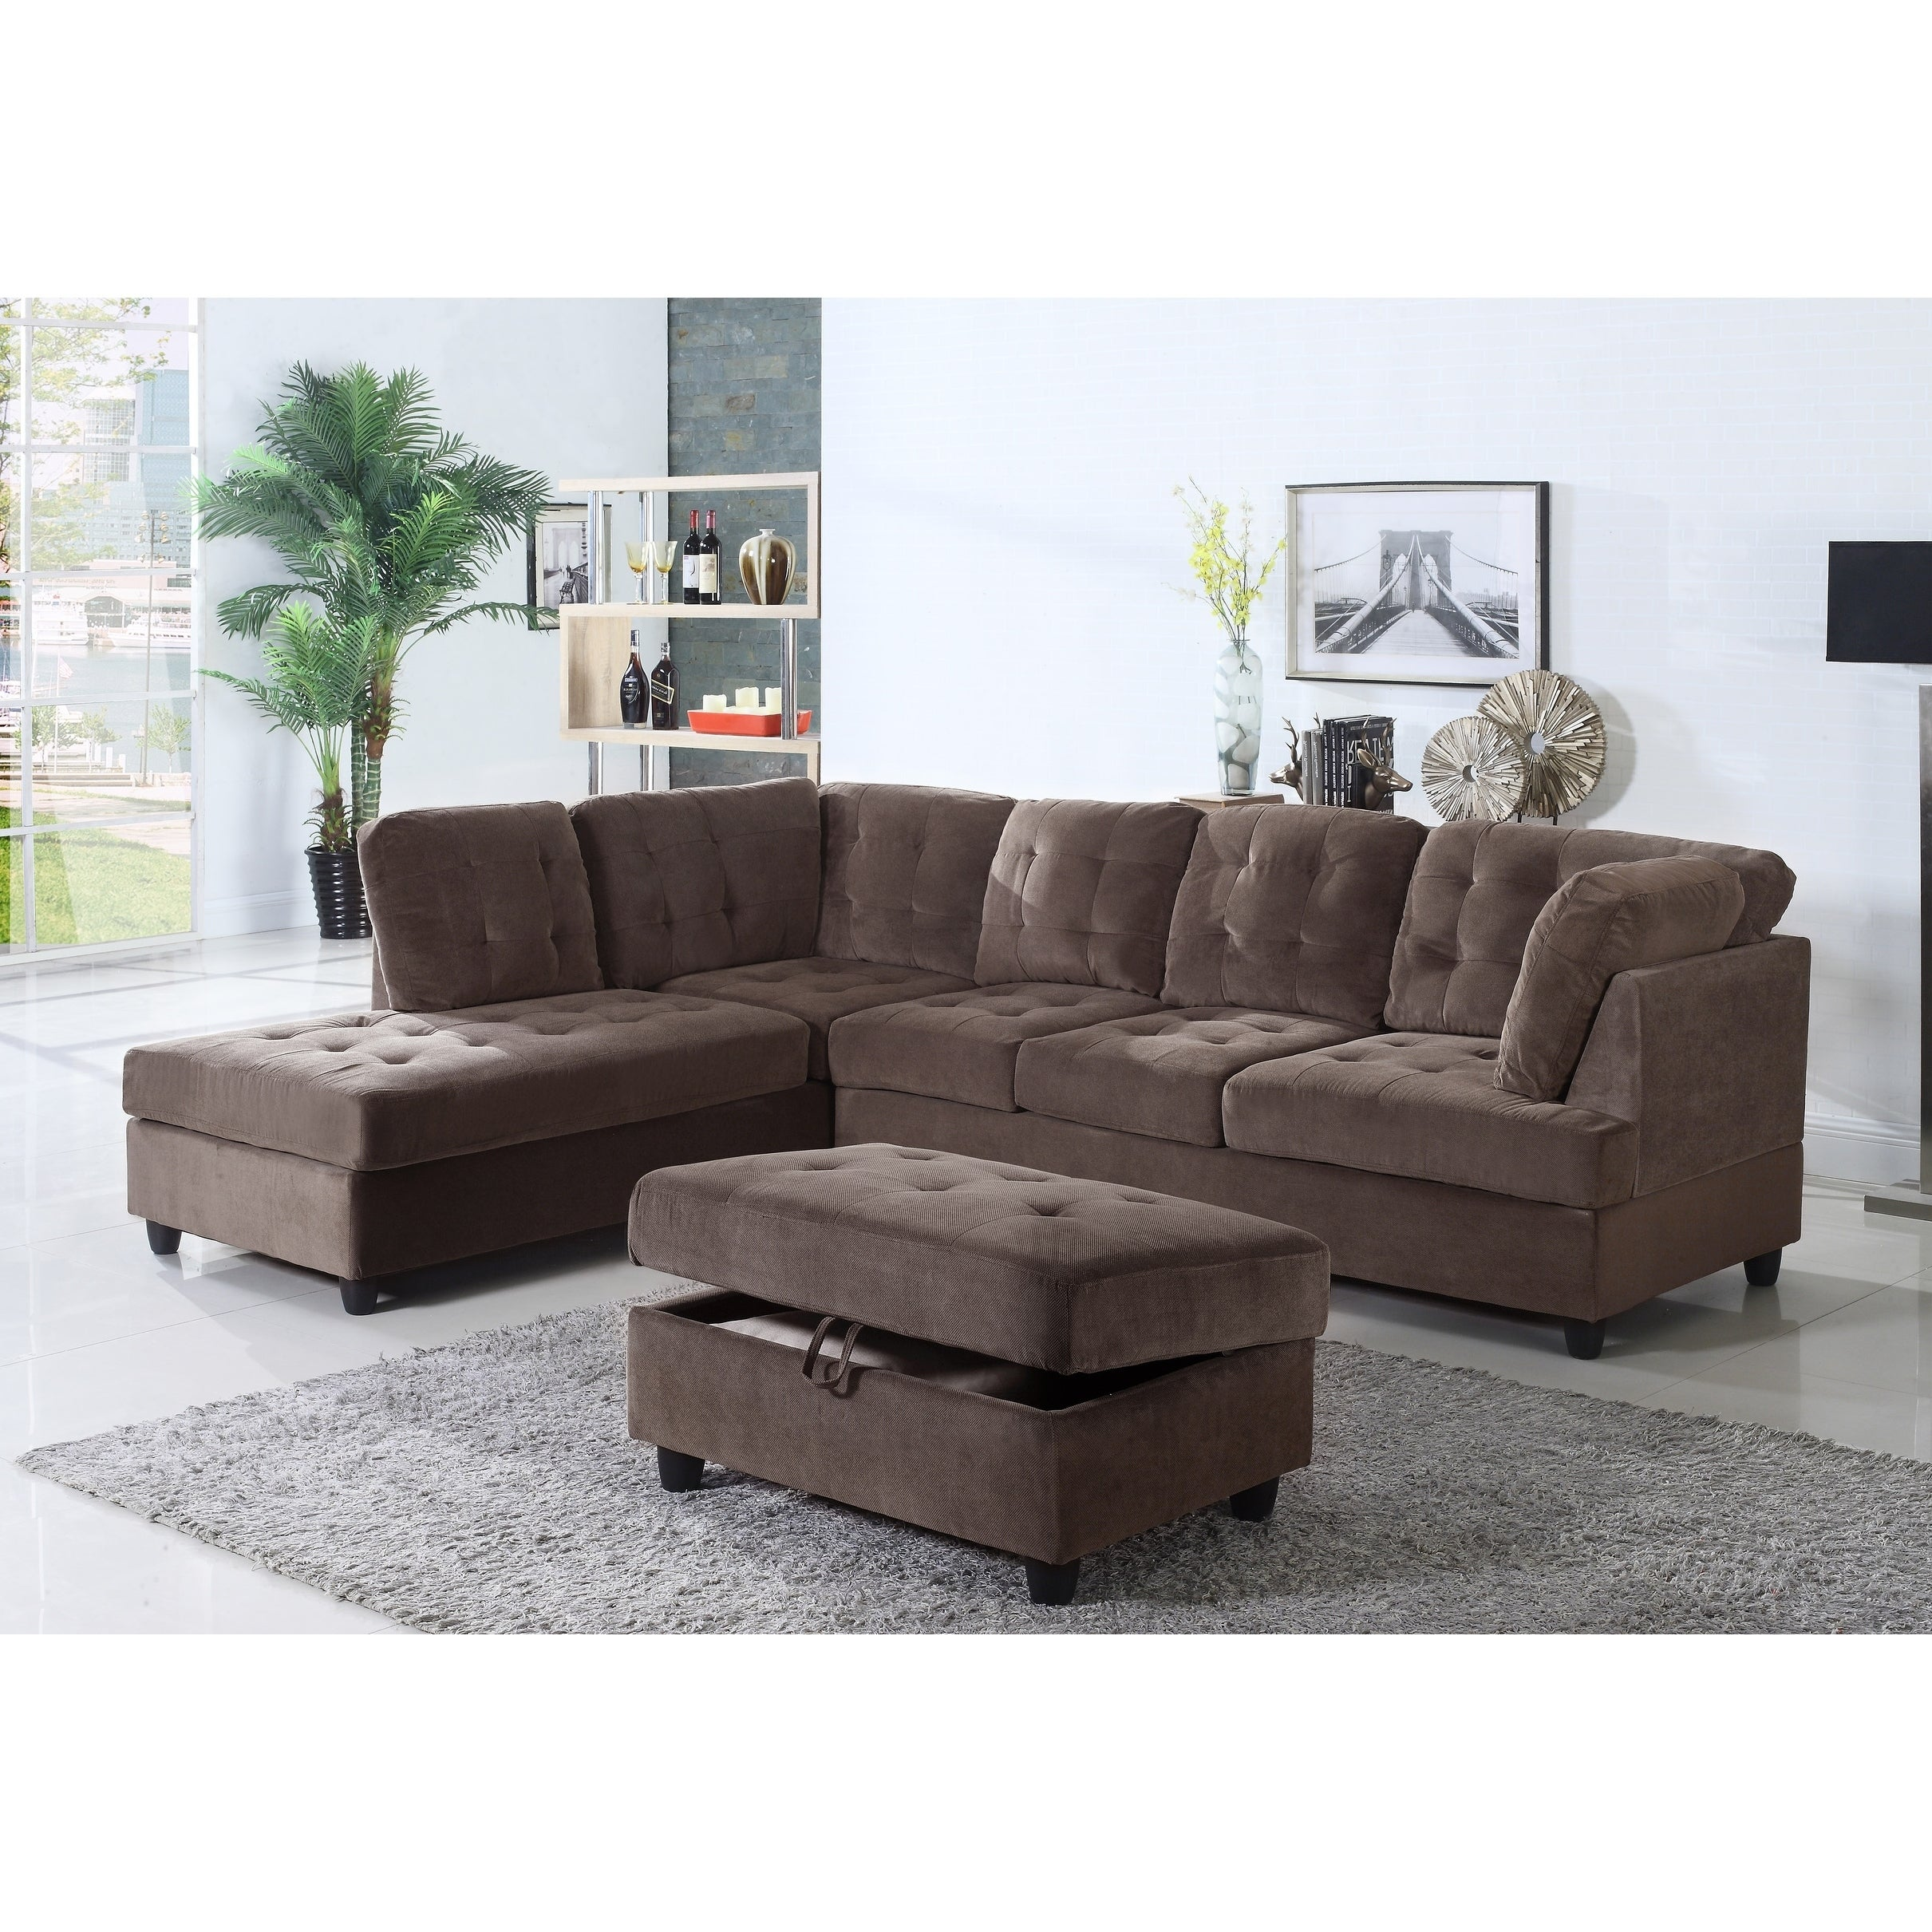 Golden Coast Furniture Brown Corduroy Fabric Upholstered 3-piece Sectional  Sofa with Ottoman Storage